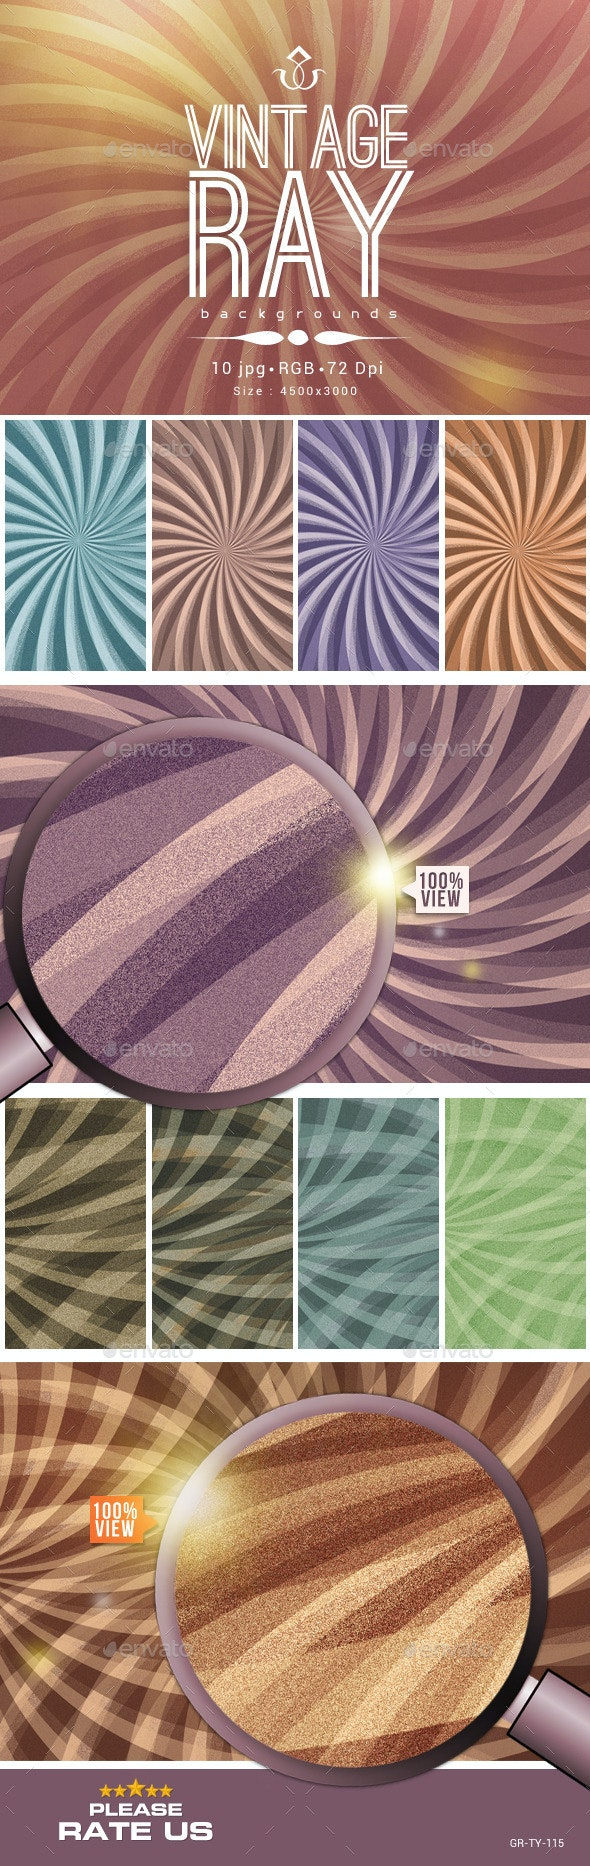 Vintage Ray Background Collection - Backgrounds Graphics